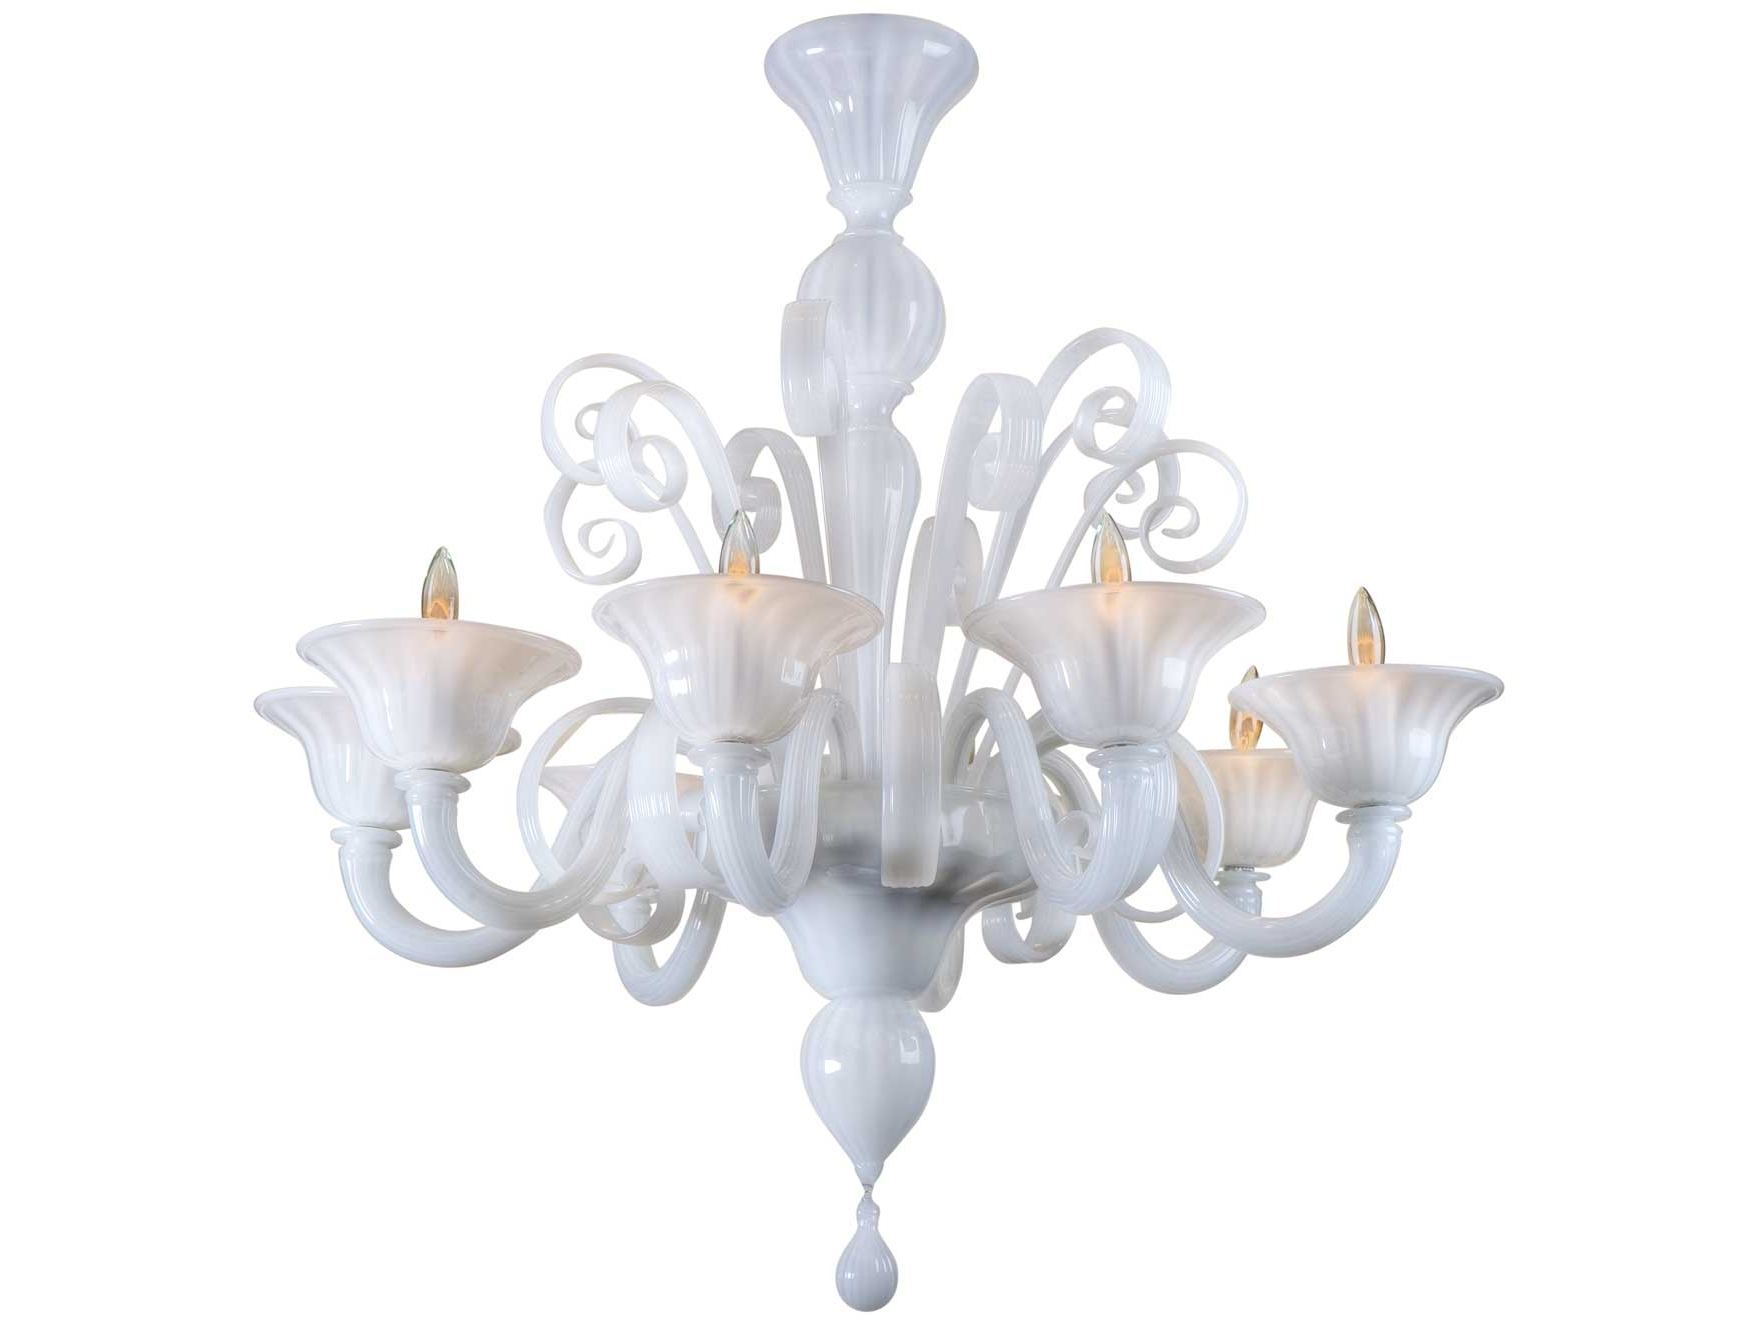 Nella Vetrina White Murano 8 Murano Chandelier In White Glass With Best And Newest White Chandeliers (View 9 of 20)